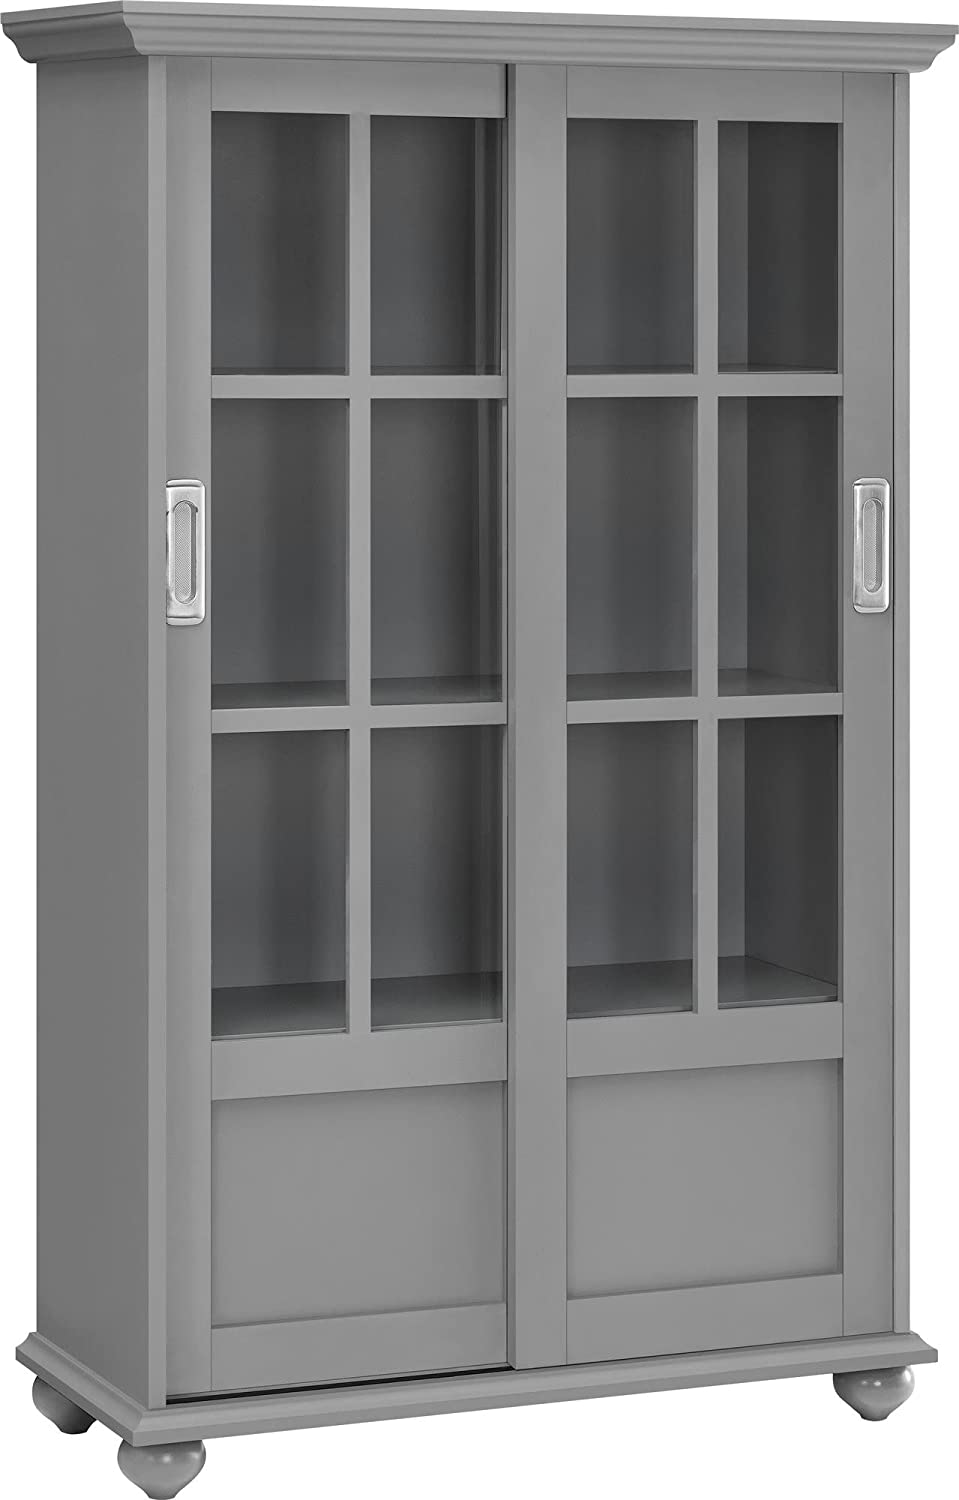 Amazon.com: Ameriwood Home Aaron Lane Bookcase with Sliding Glass Doors,  Gray: Kitchen & Dining